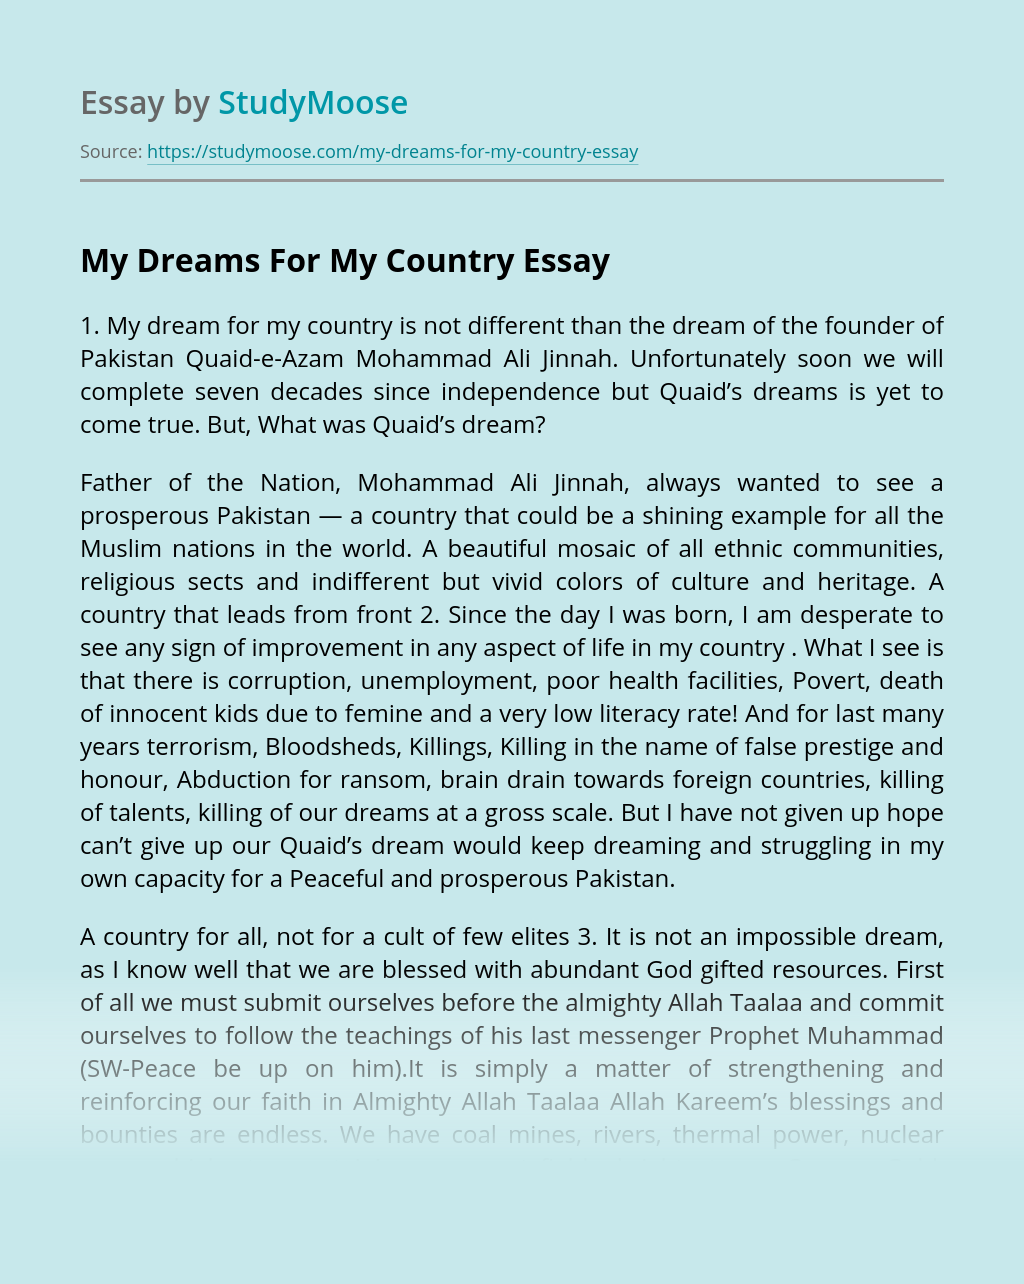 My Dreams For My Country